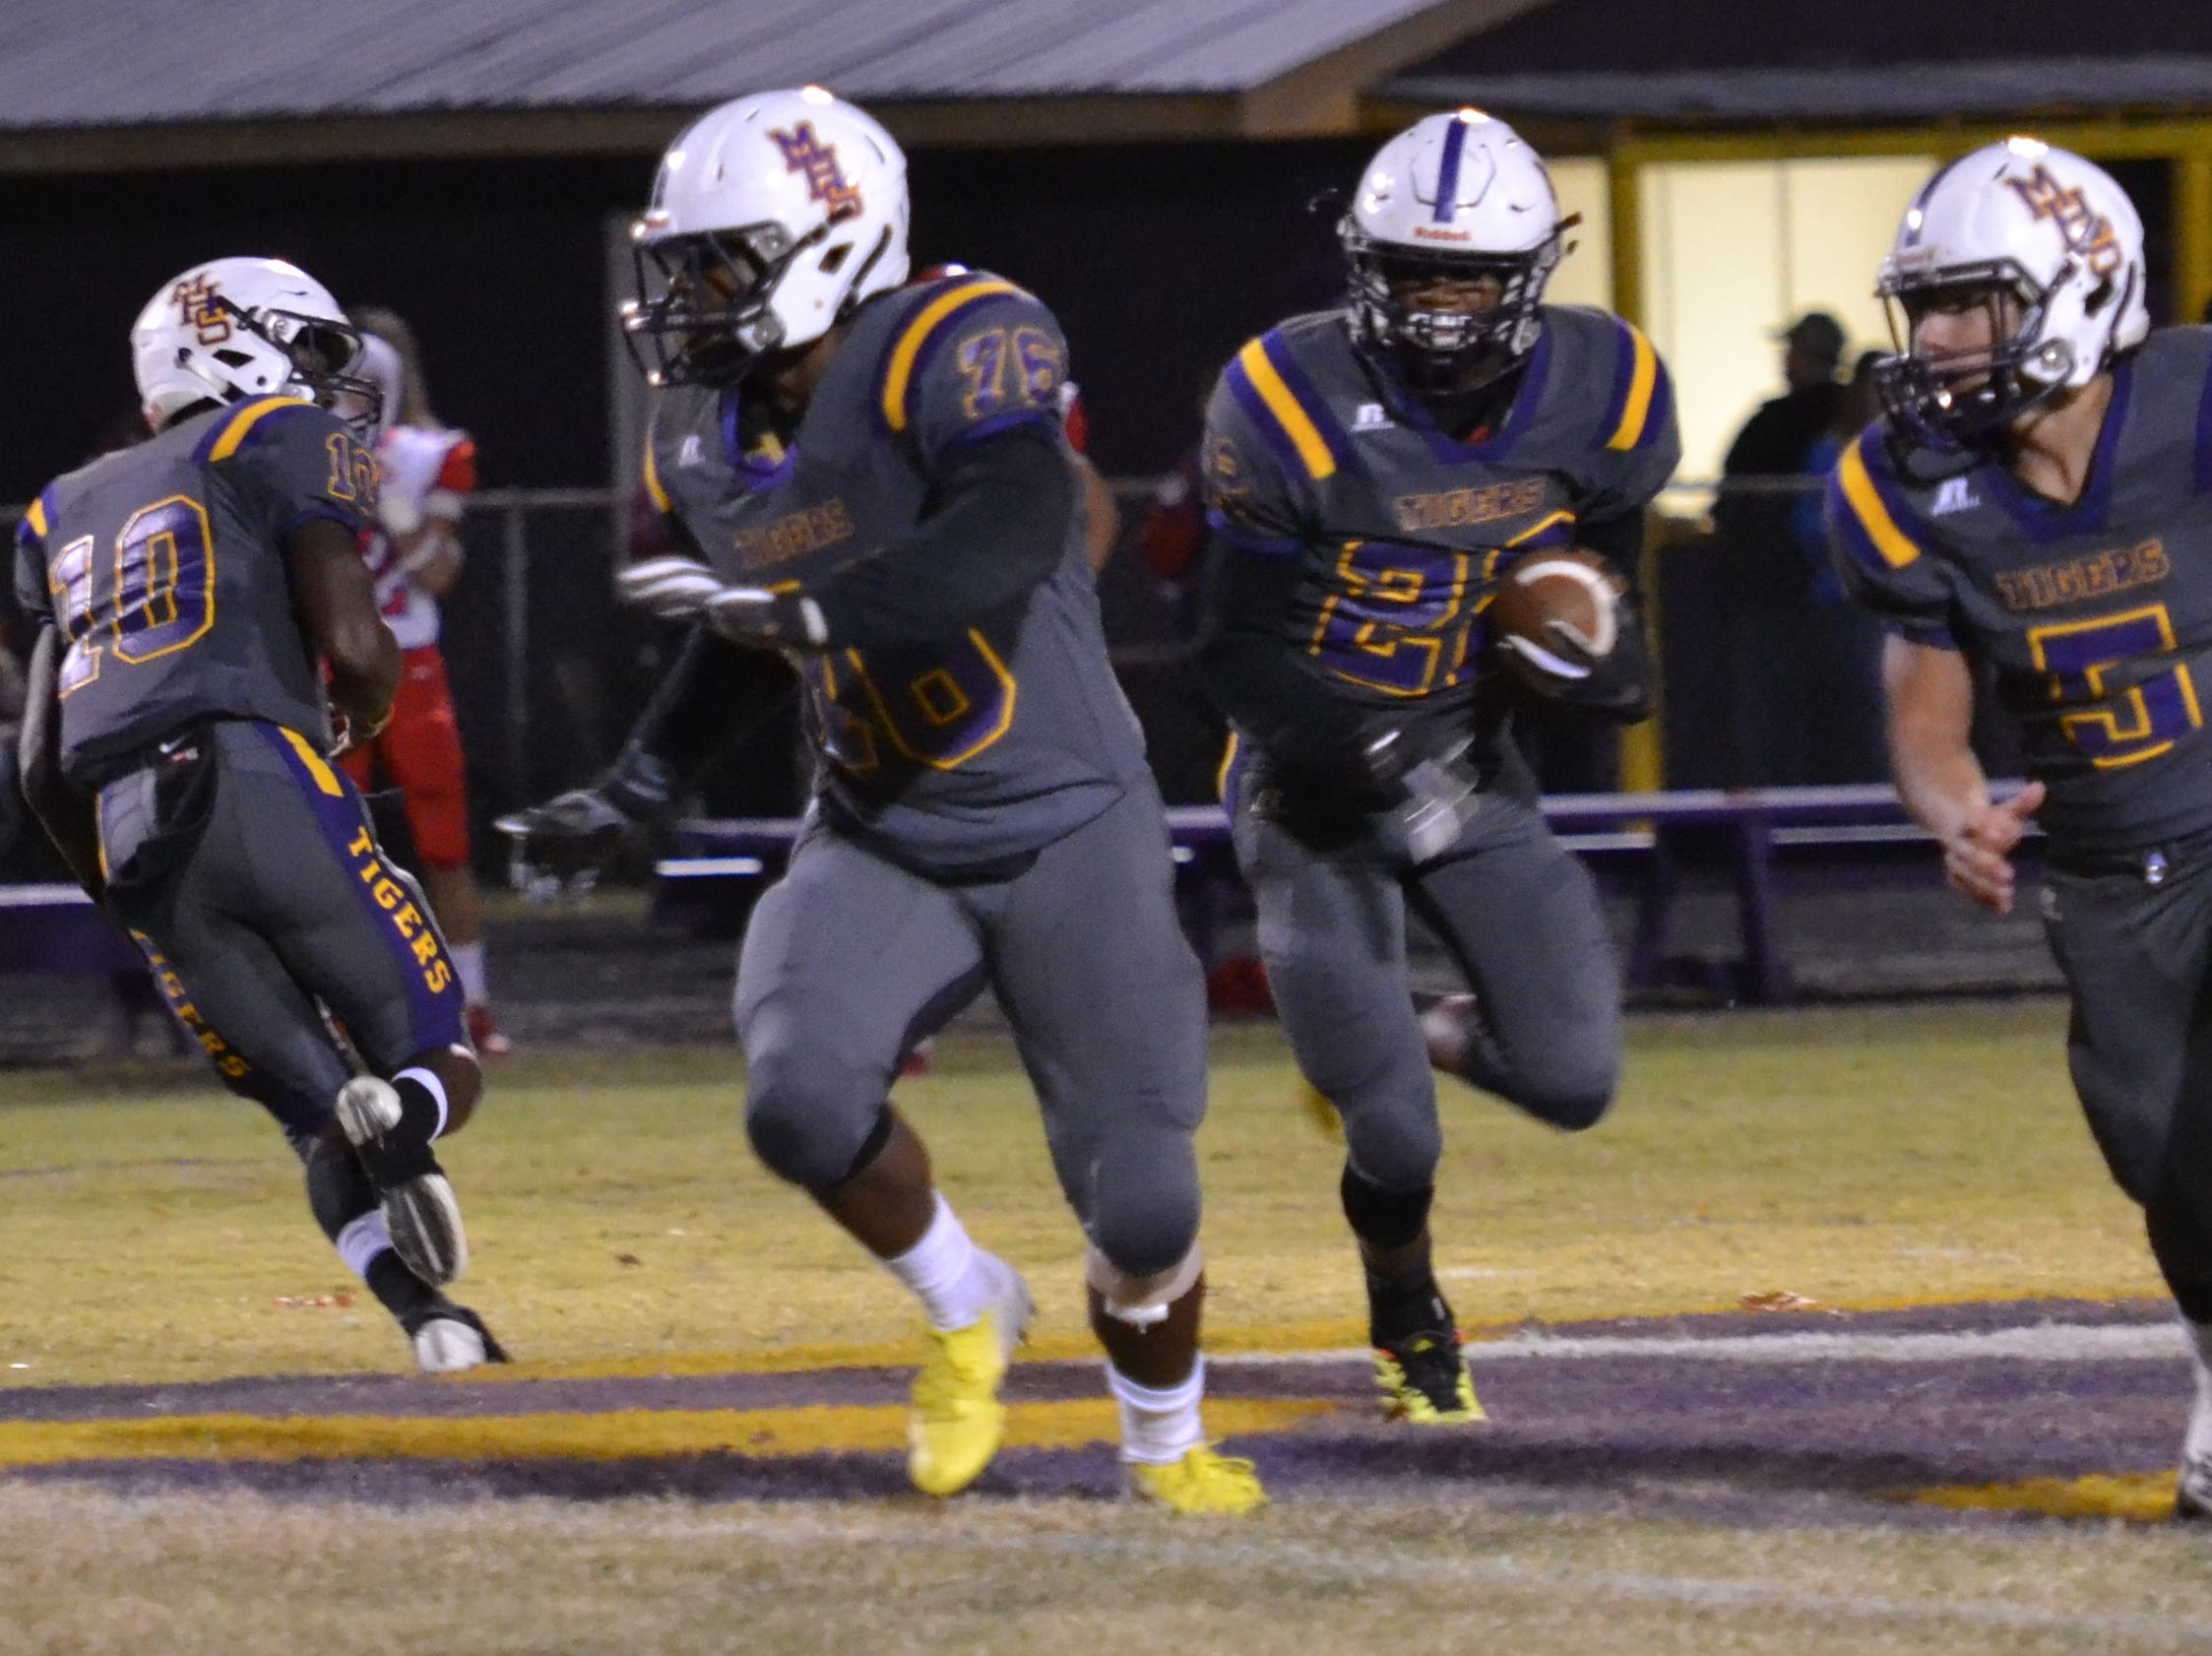 Tiger running back Kameron Washington  (22) gets the ball and has blockers Leonard Sampson (76) and Bryce Moseley (5) to lead his way. Marksville and Caldwell met in the regular season finale Friday night with Caldwell edging Marksville 13-8.